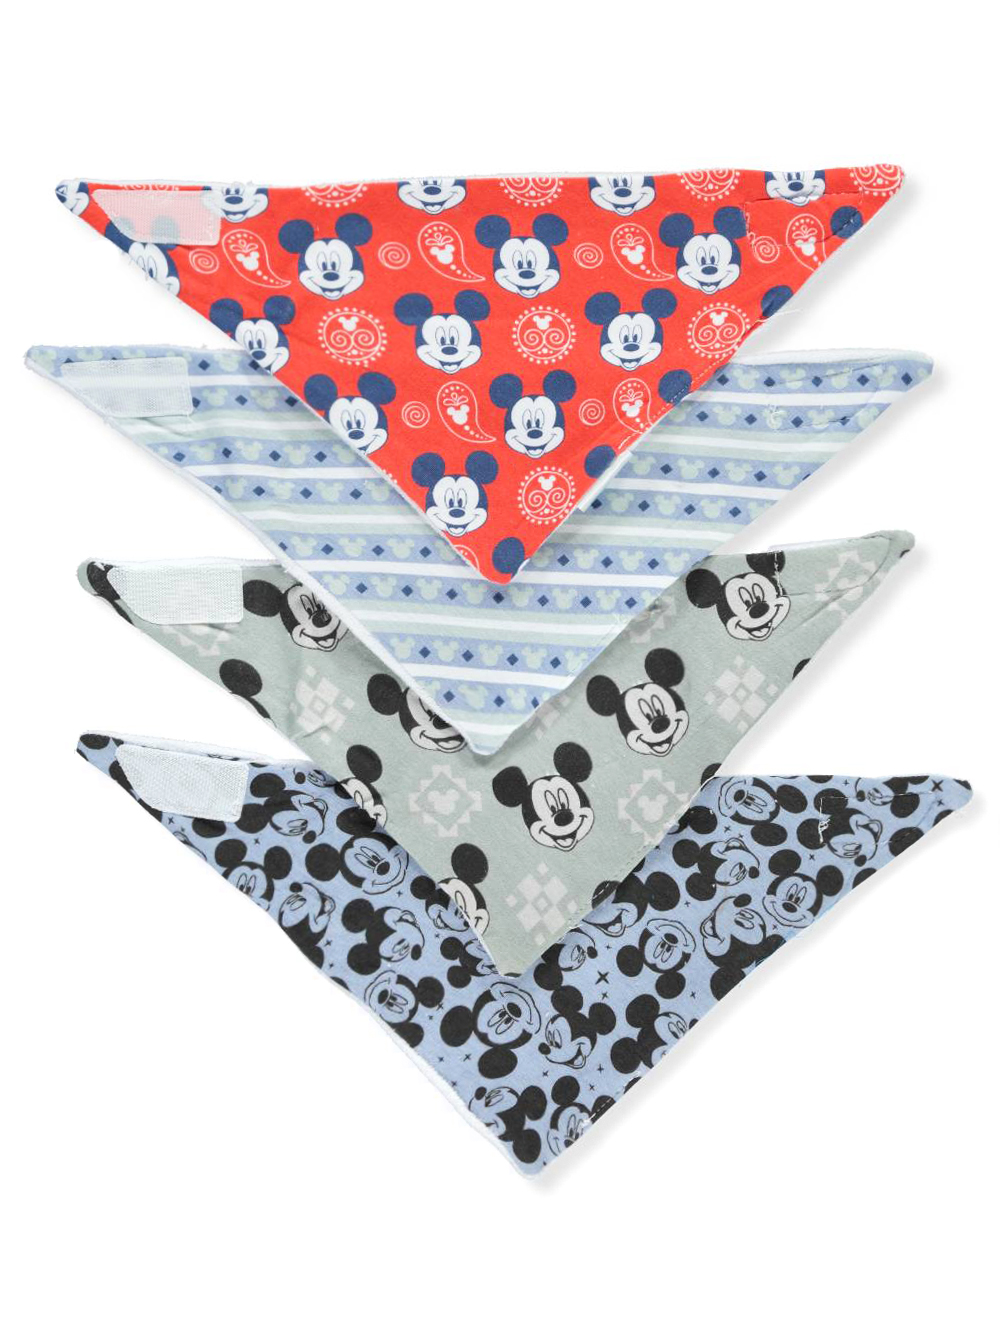 3c830a37042 Mickey Mouse Baby Boys' 4-Pack Bandana Bibs by Disney in Red/multi from  Cookie's Kids